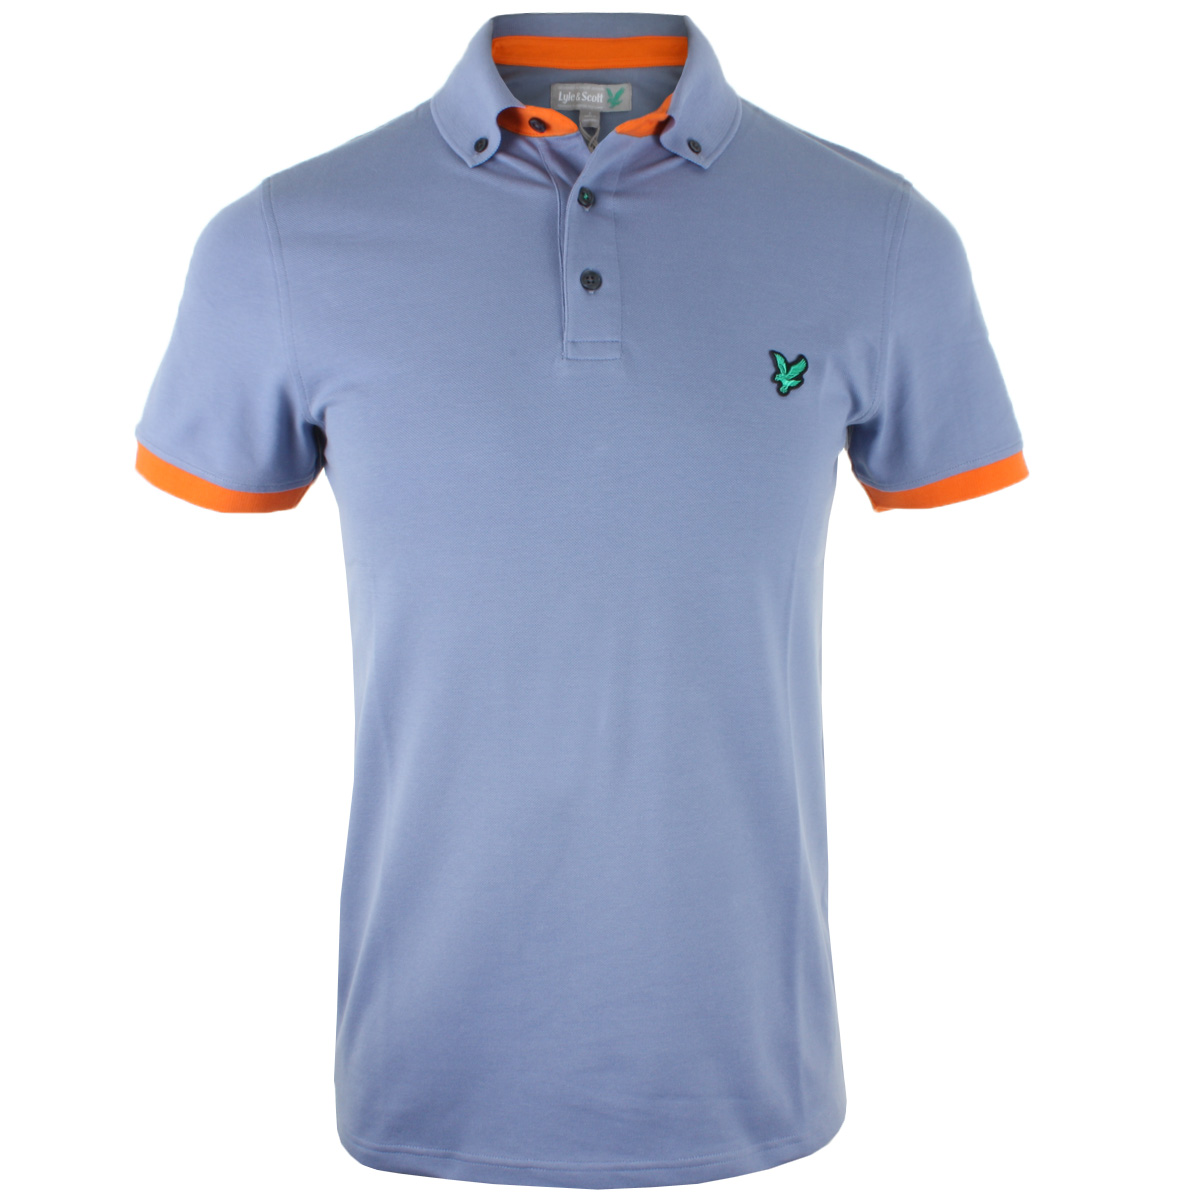 Mens Grey Polo Shirts